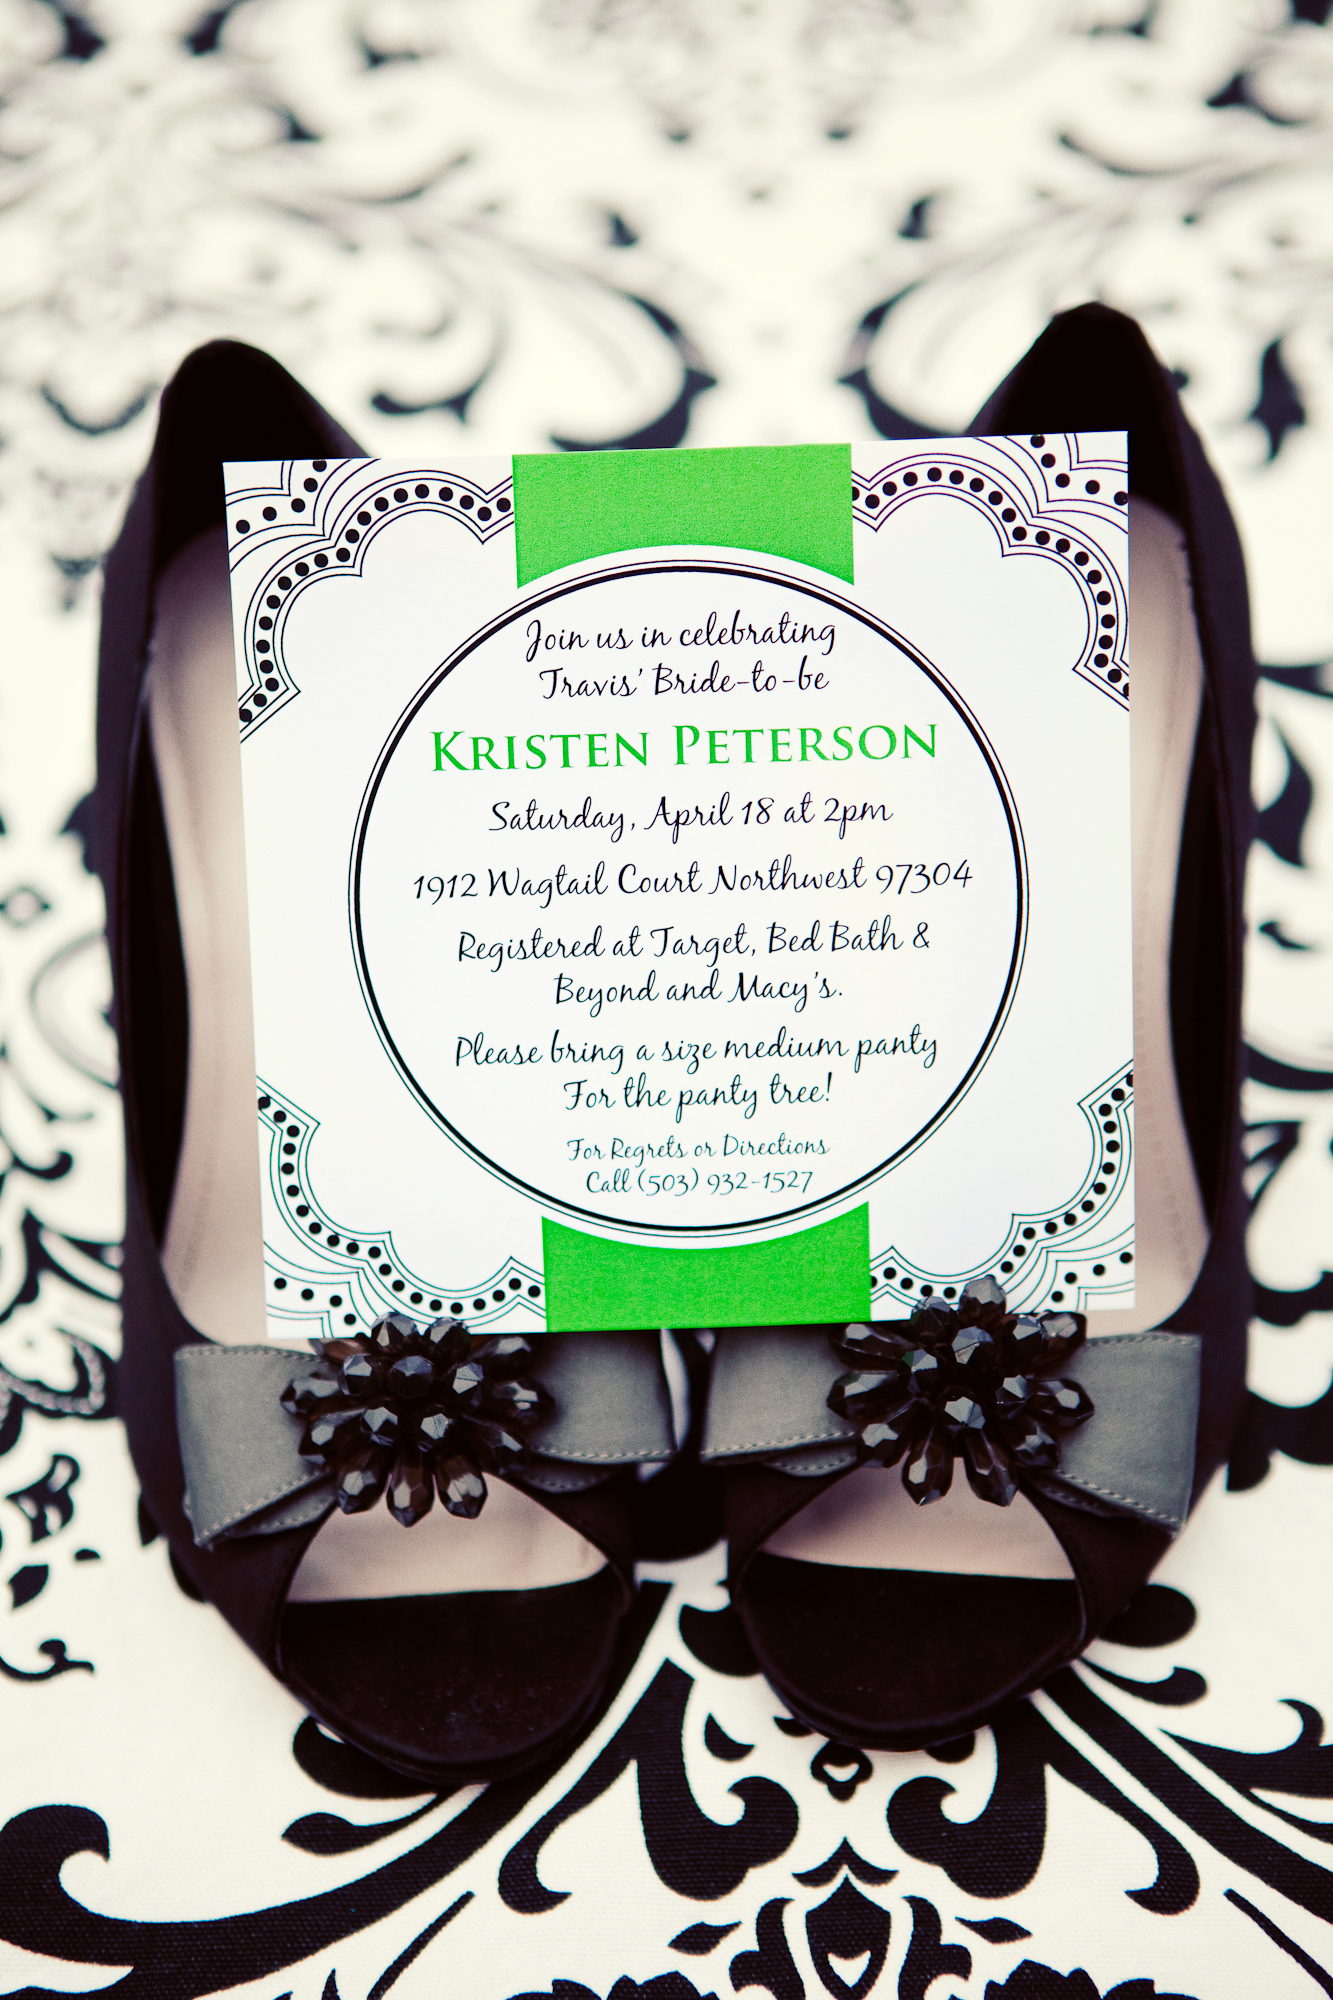 Modern Wedding Invitations, Red pearl designs